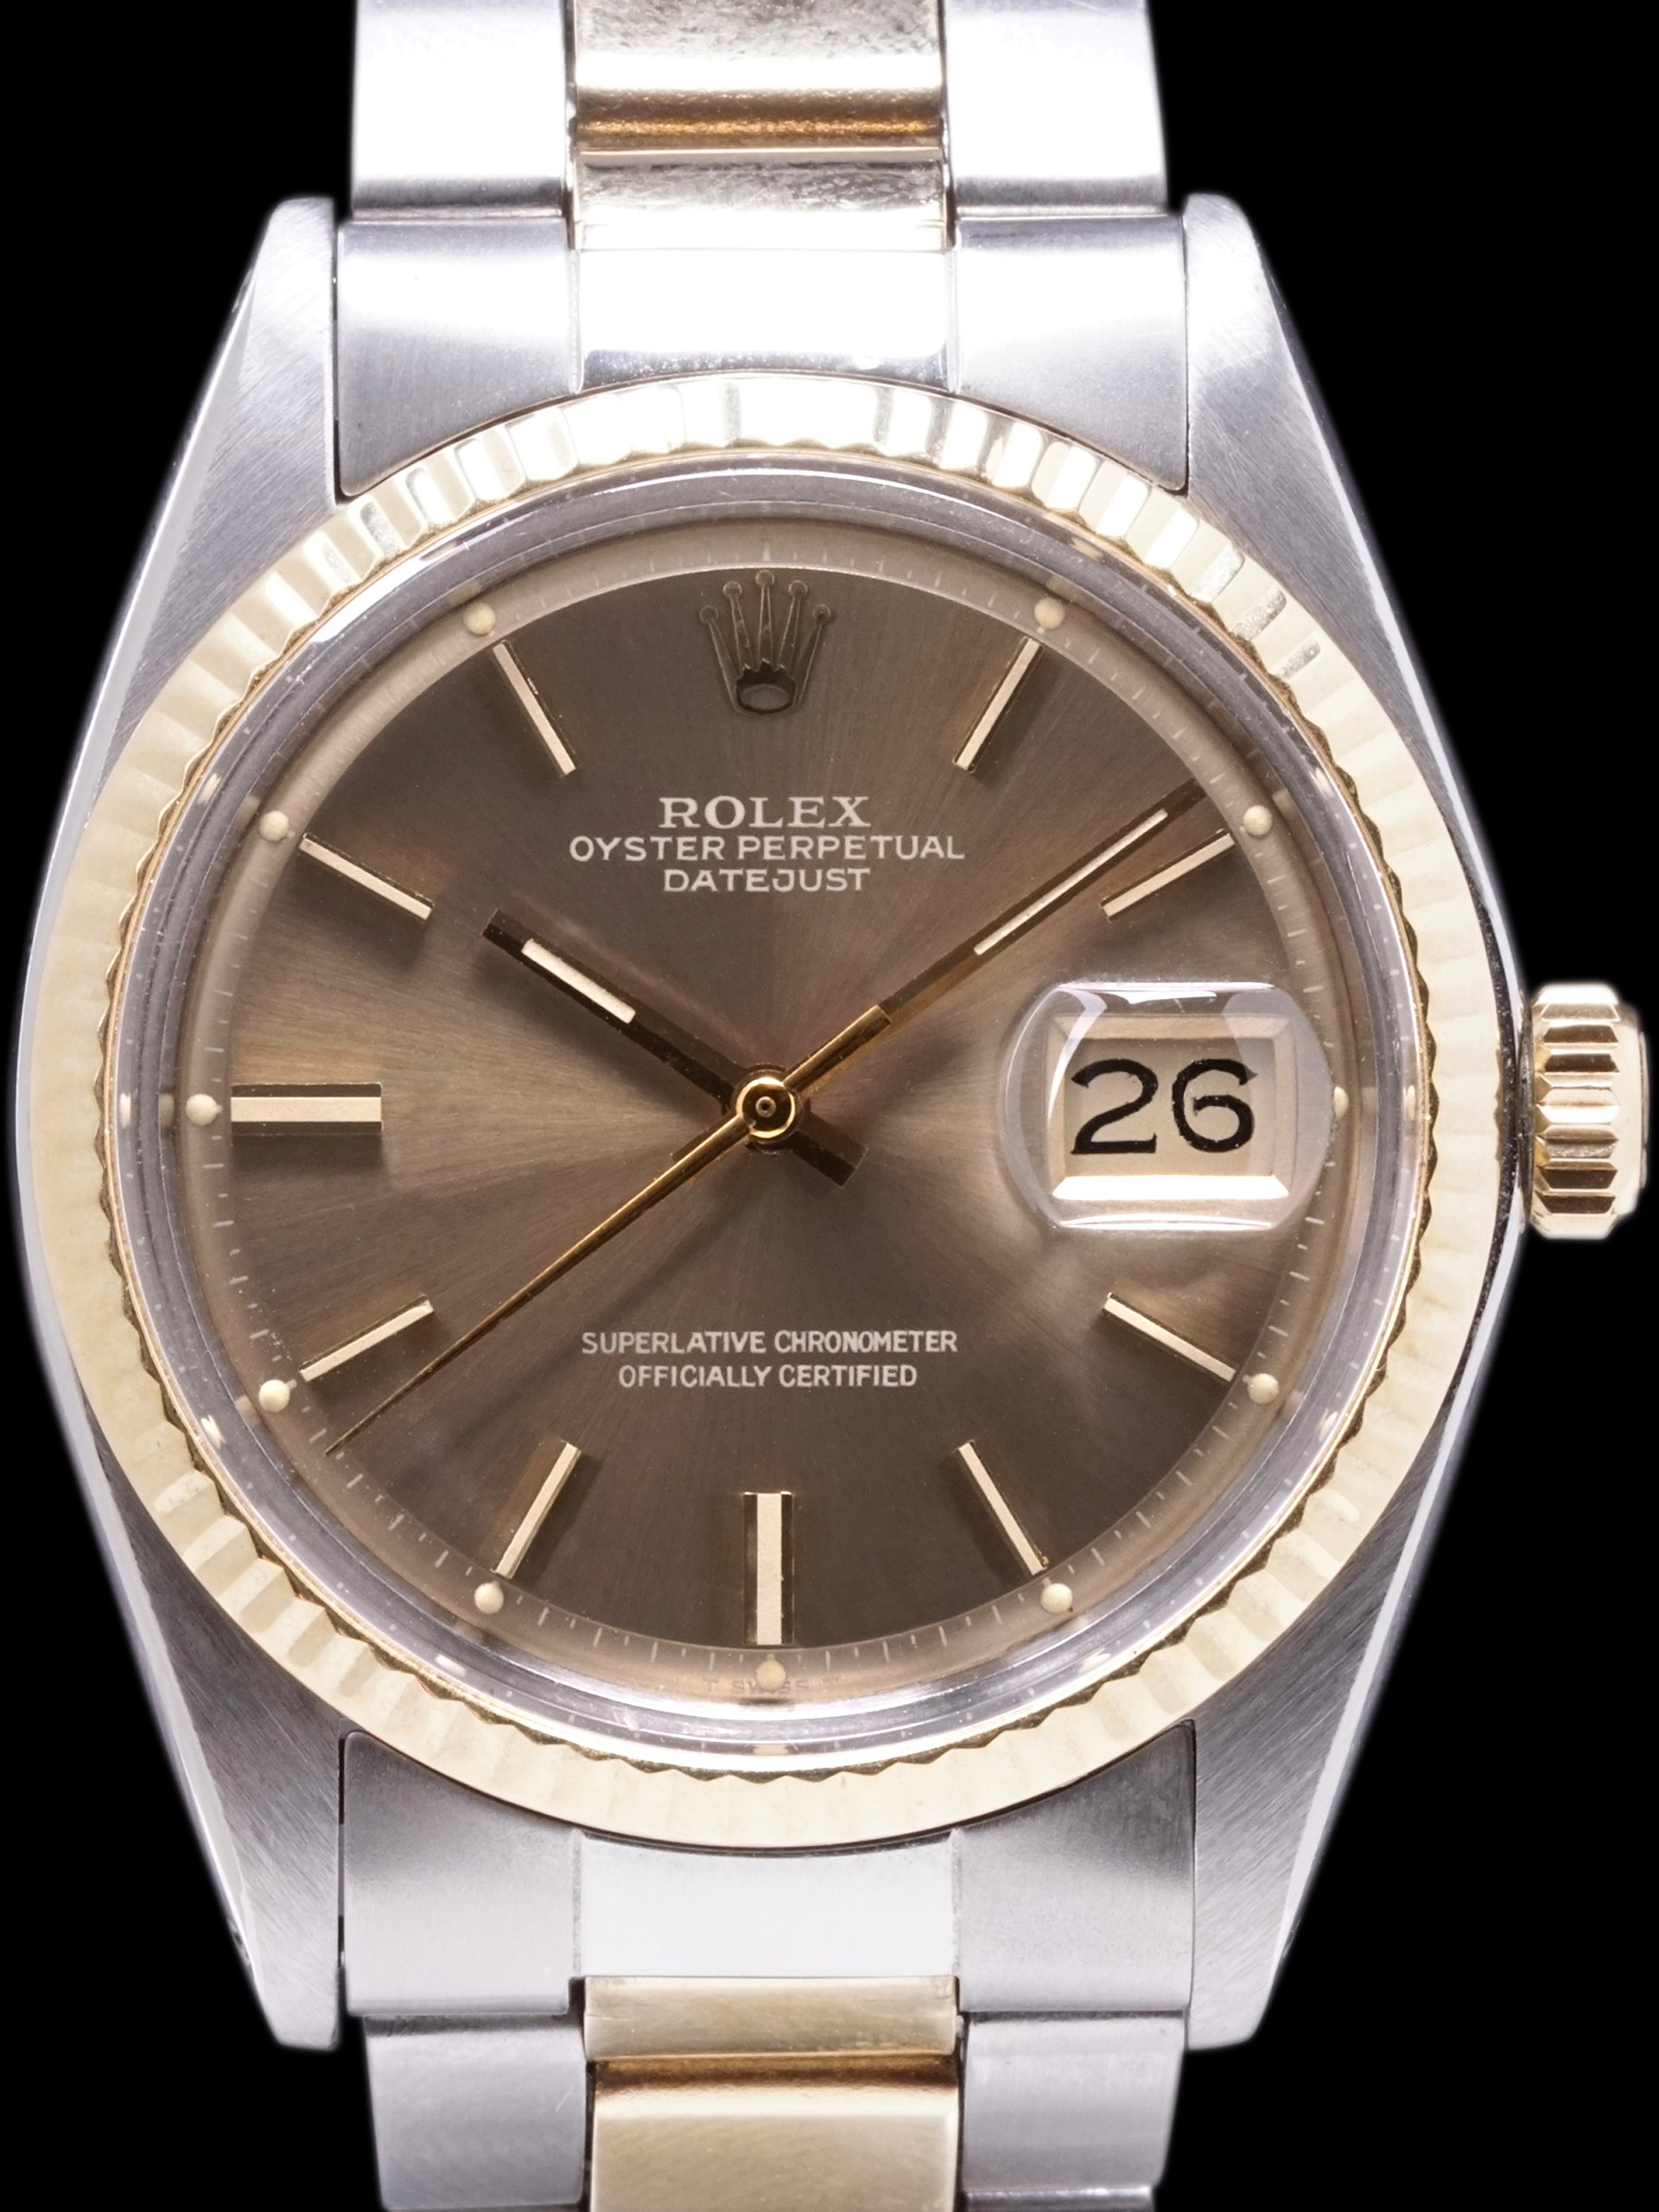 1973 Rolex Two-Tone Datejust (Ref. 1601) W/ Box, Papers, & RSC Paper